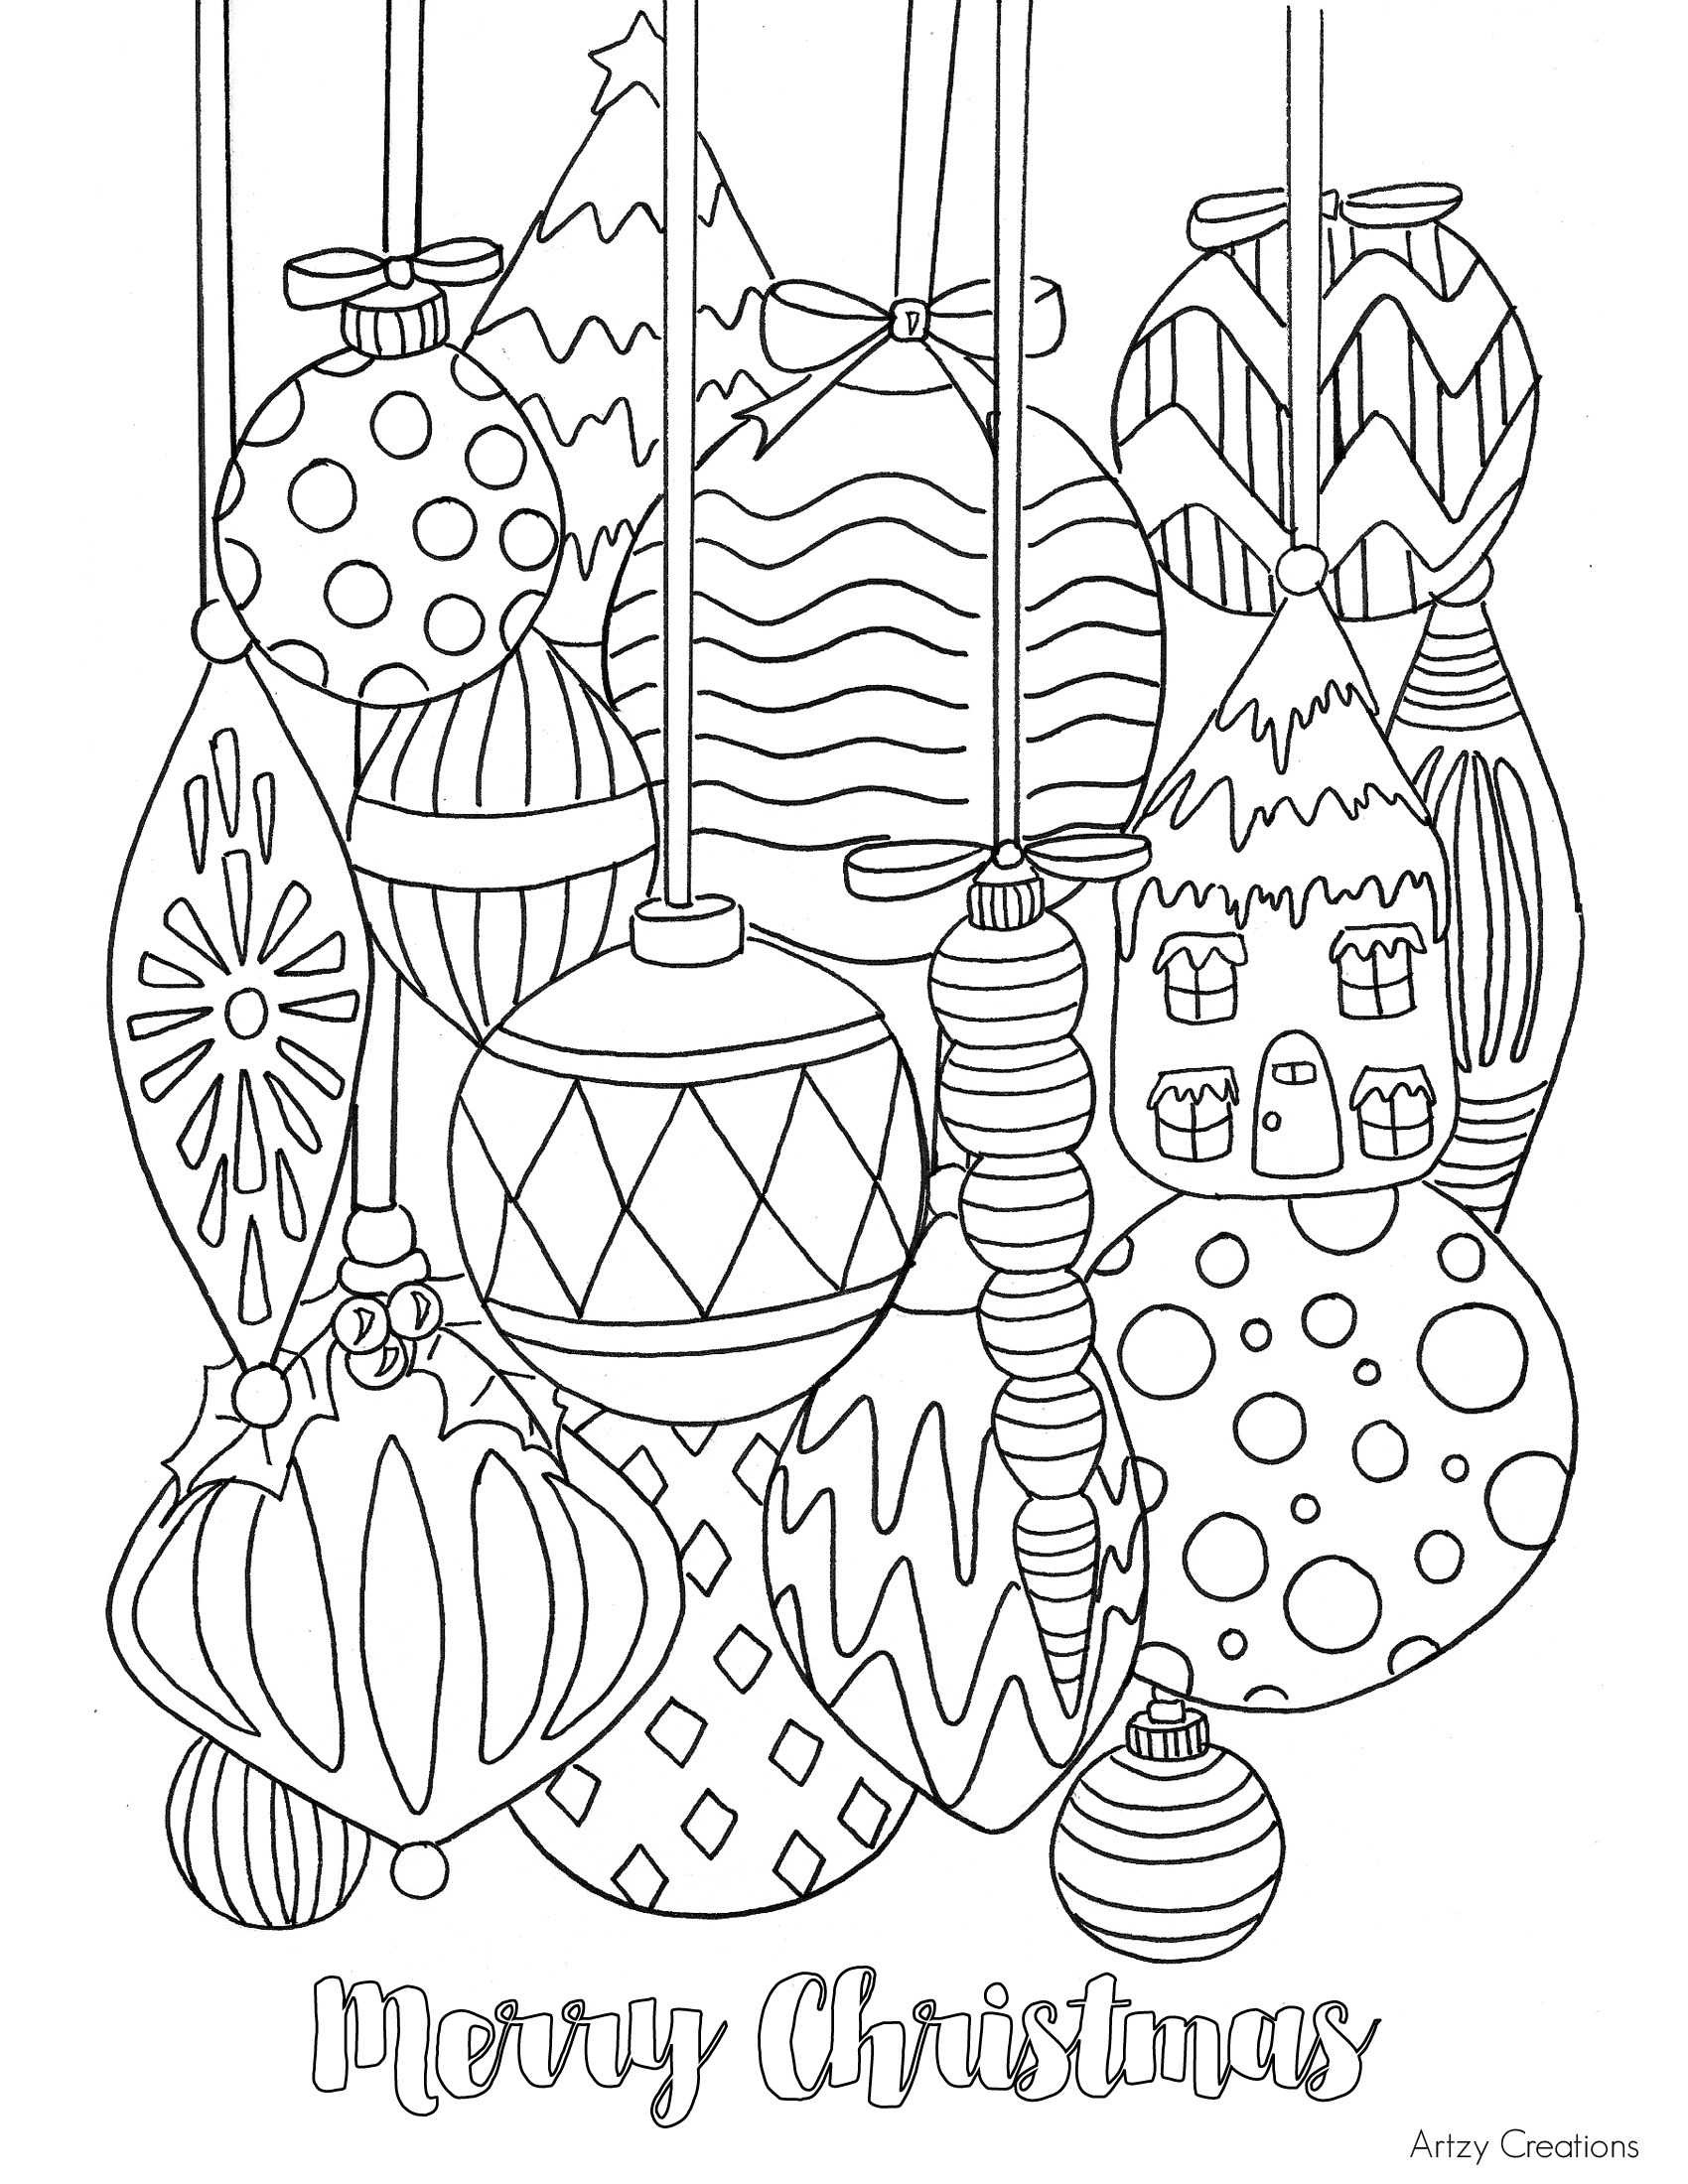 Christmas Coloring Pages Adults With Page Of Manger Scene 2019 Unique